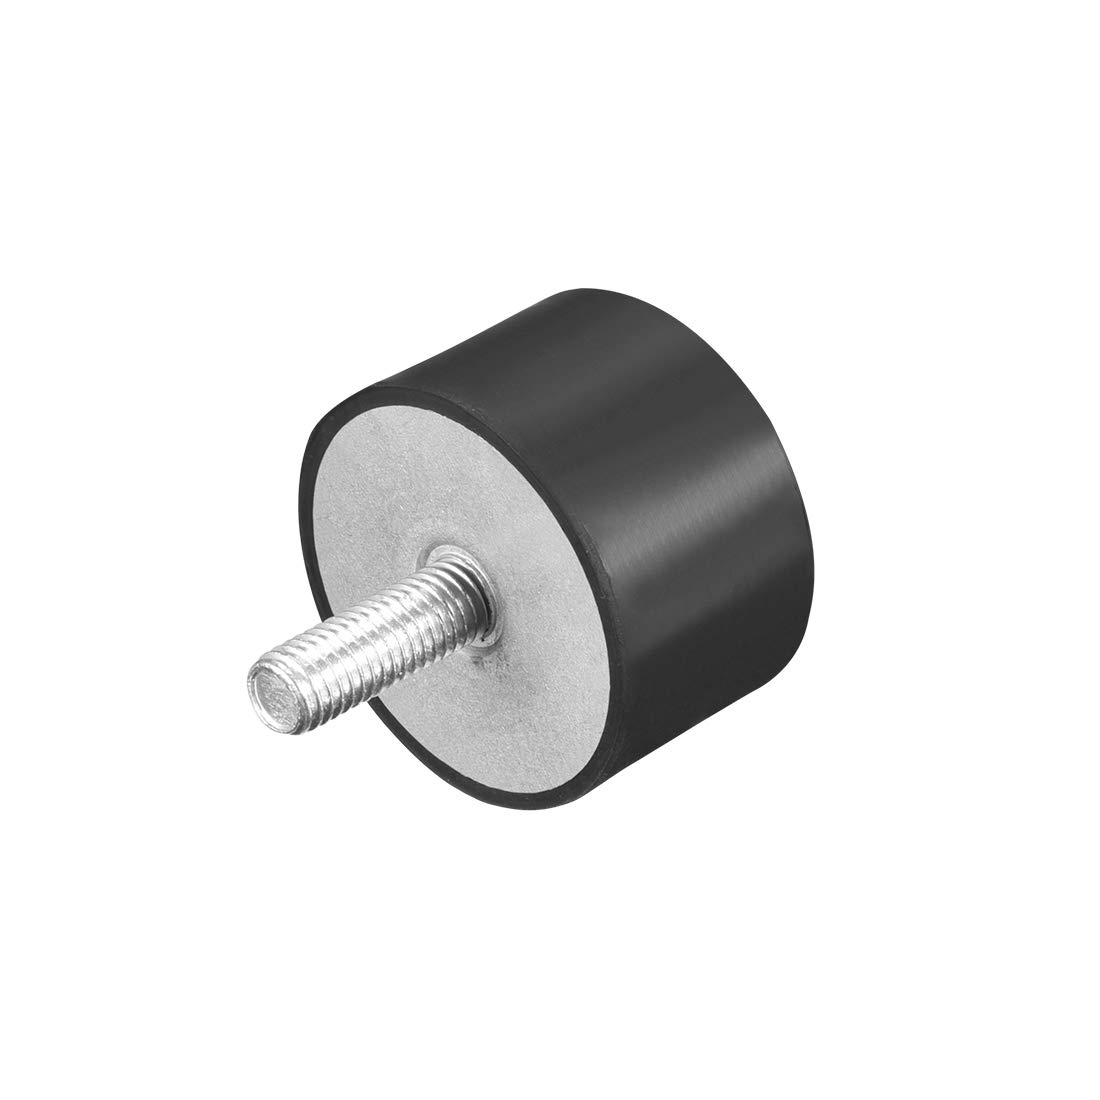 uxcell M10 Thread Rubber Mounts,Vibration Isolators,Cylindrical Shock Absorber with Studs 50 x 30mm